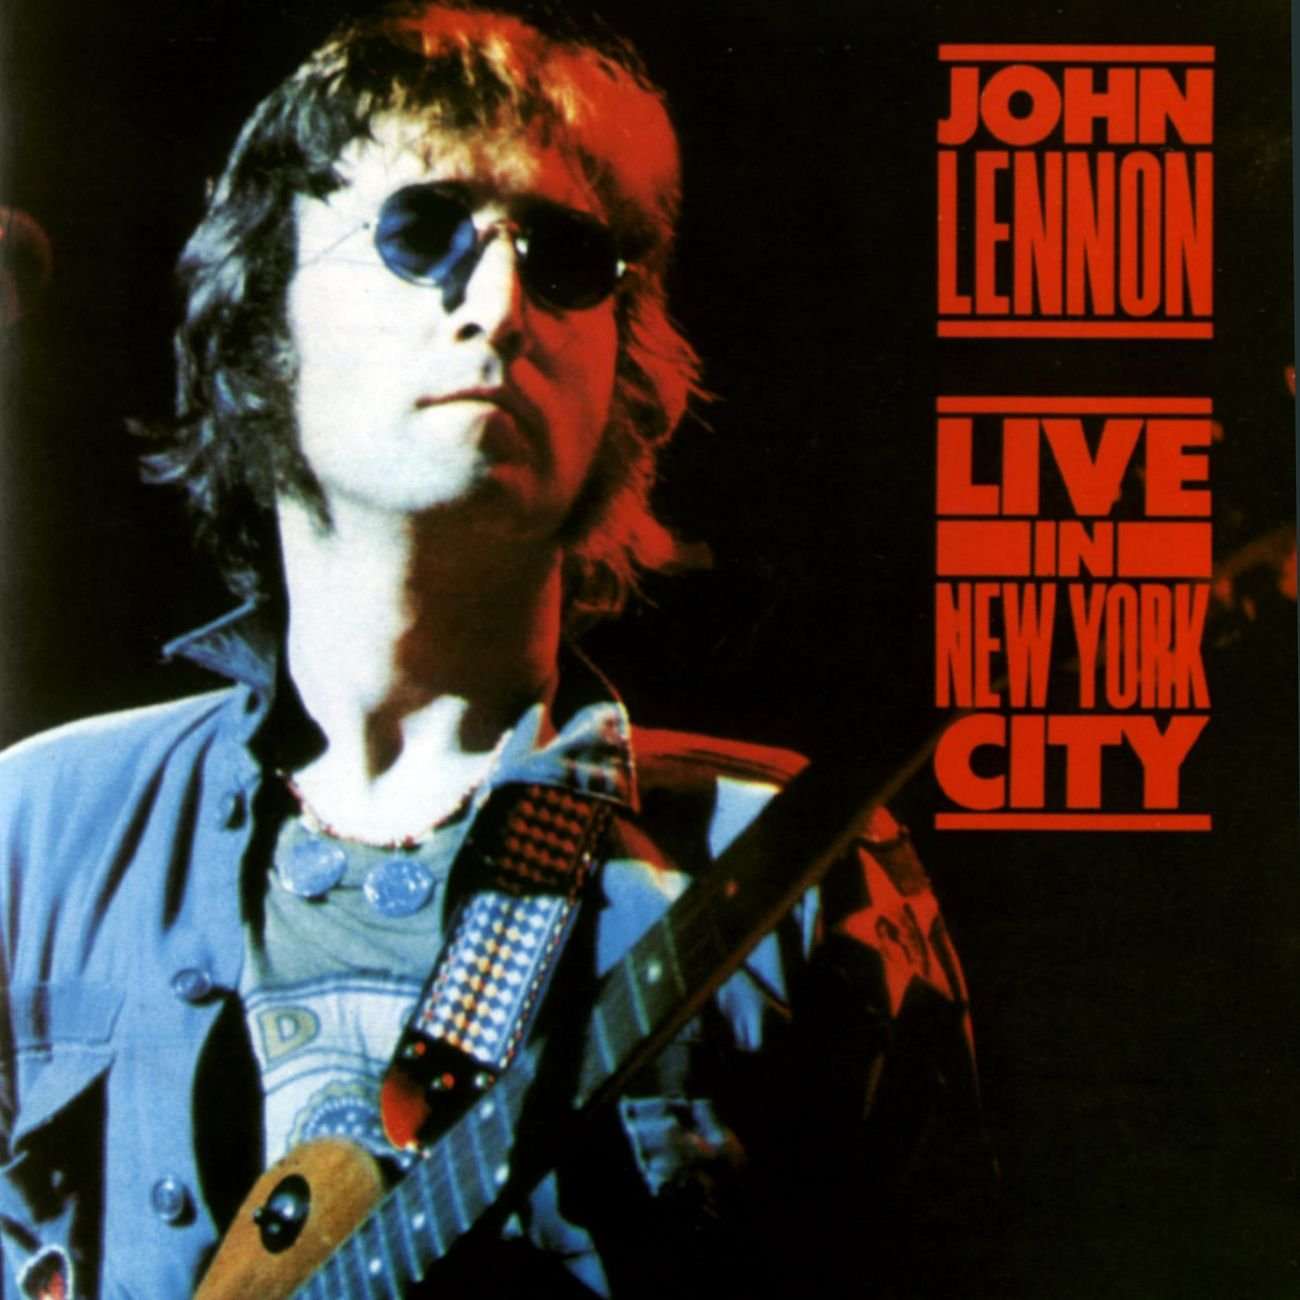 John Lennon - Live In New York City (1986) [FLAC] Download